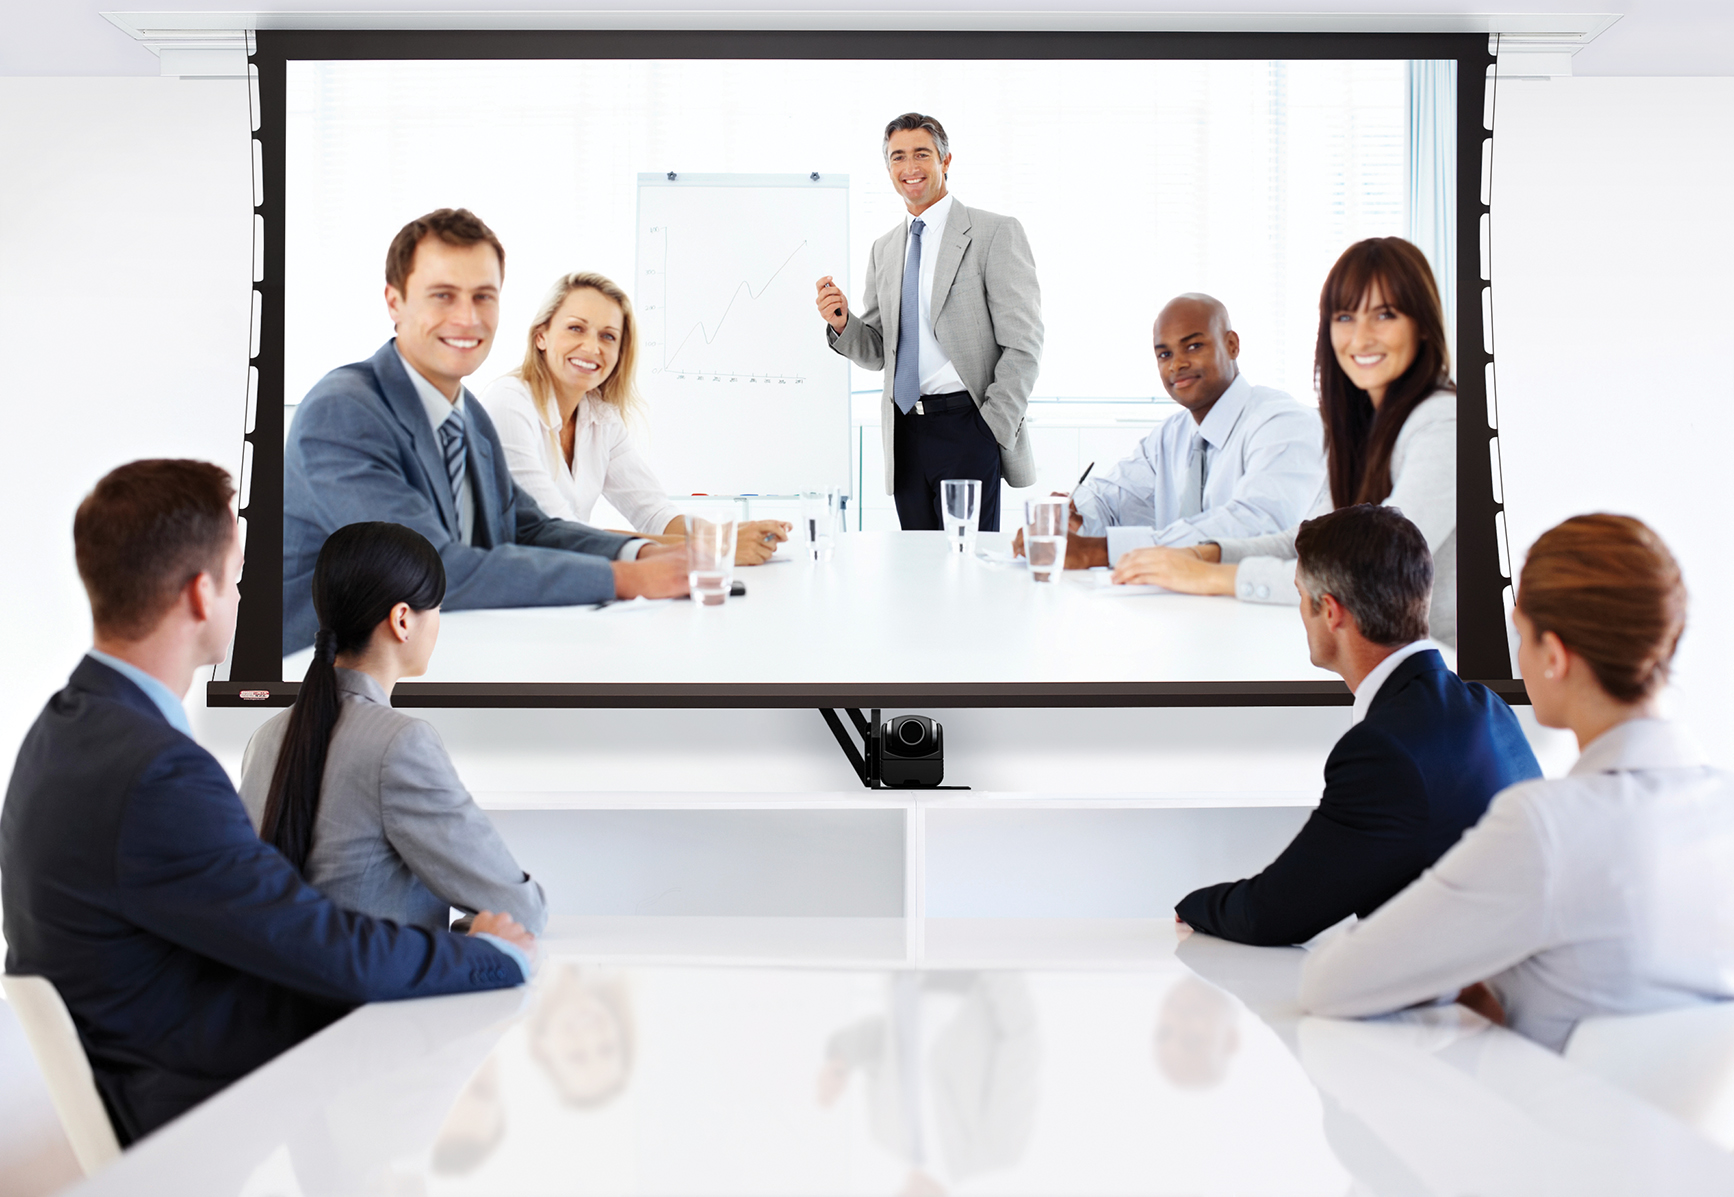 At Its Simplest, Video Conferencing Provides Transmission Of Static Images And Text Between Two Locations.